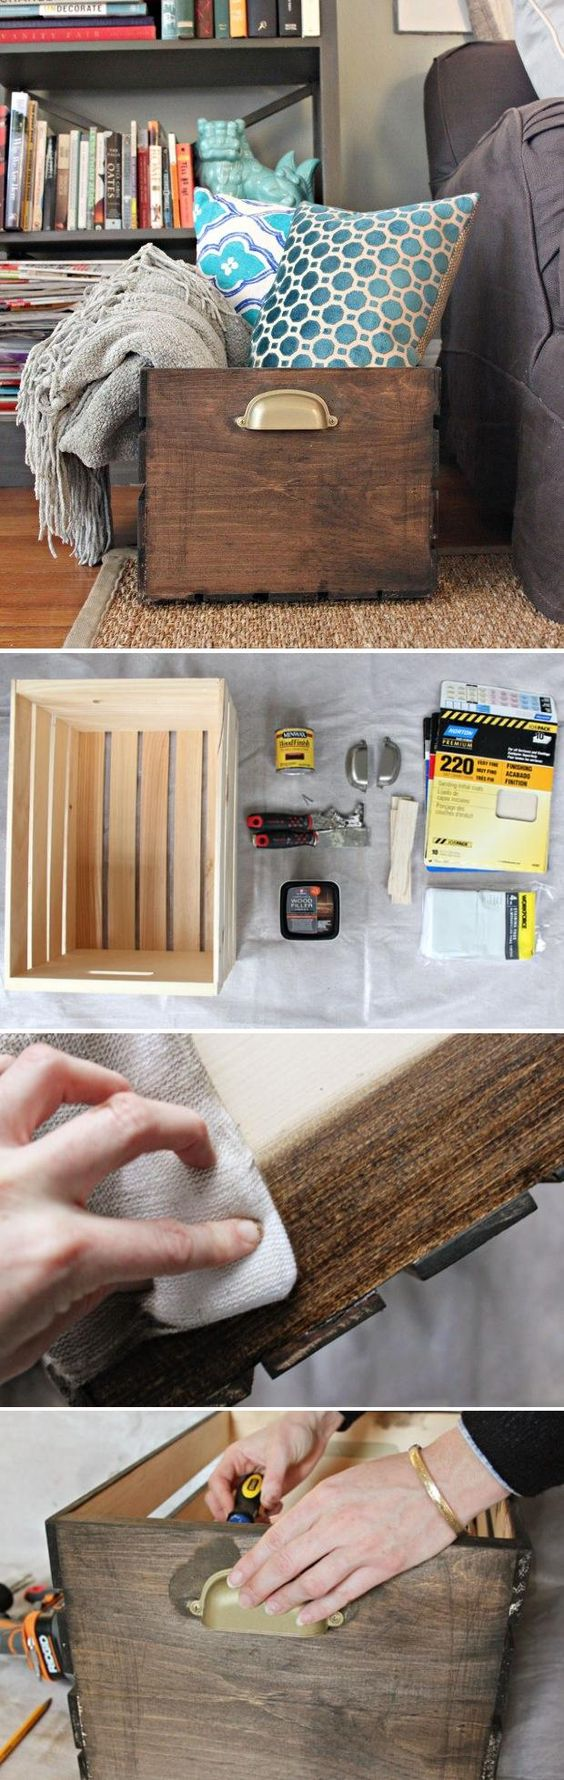 4 DIY Wood Crate Projects With Lots of Tutorials